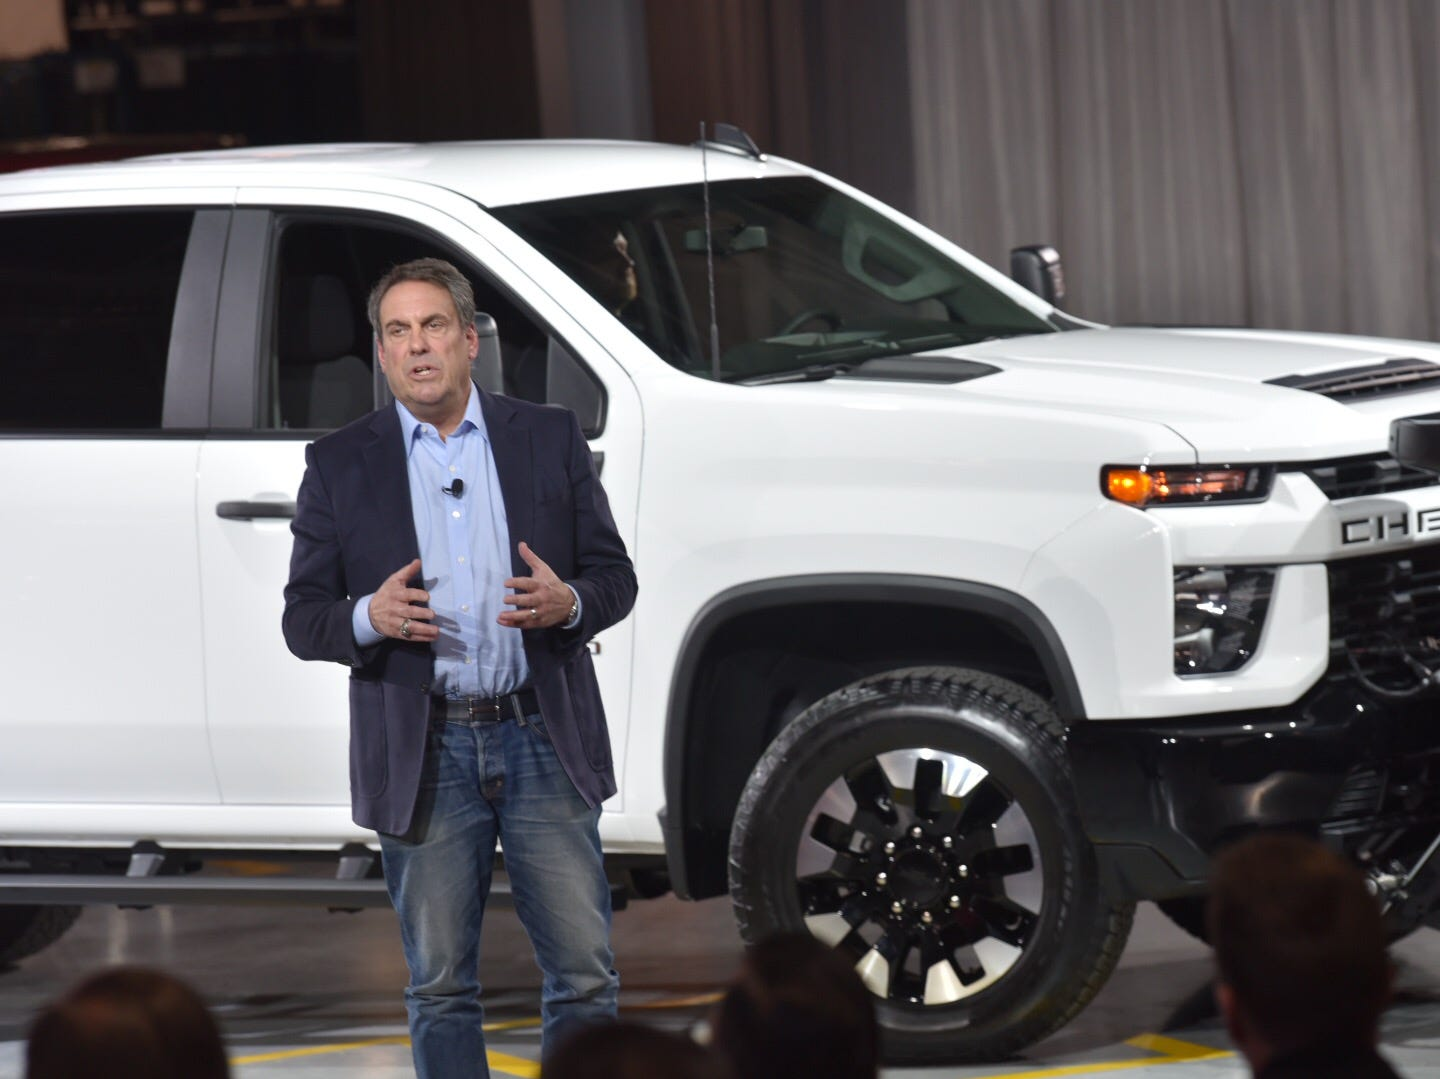 General Motors President Mark Reuss introduces the 2020 Chevrolet Silverado HD pickup truck at GM's Flint Assembly Plant. Chevy's new behemoths will still benefit from the light-duty Silverado's new high-strength steel architecture, but with a new chassis that allows for three more inches of rear legroom.